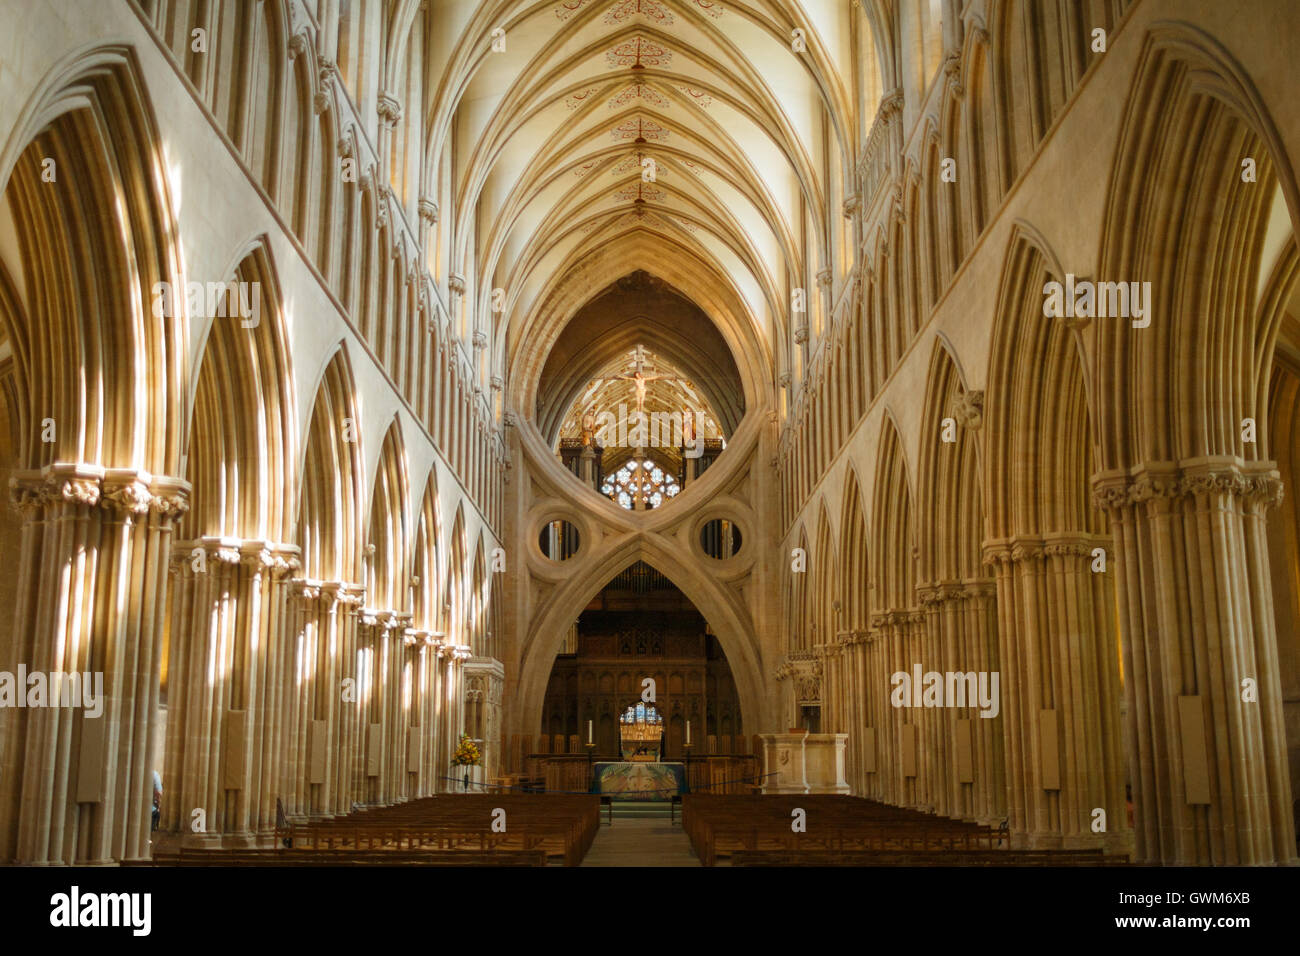 Interior view of Wells Cathedral Church of Saint Andrew - Stock Image